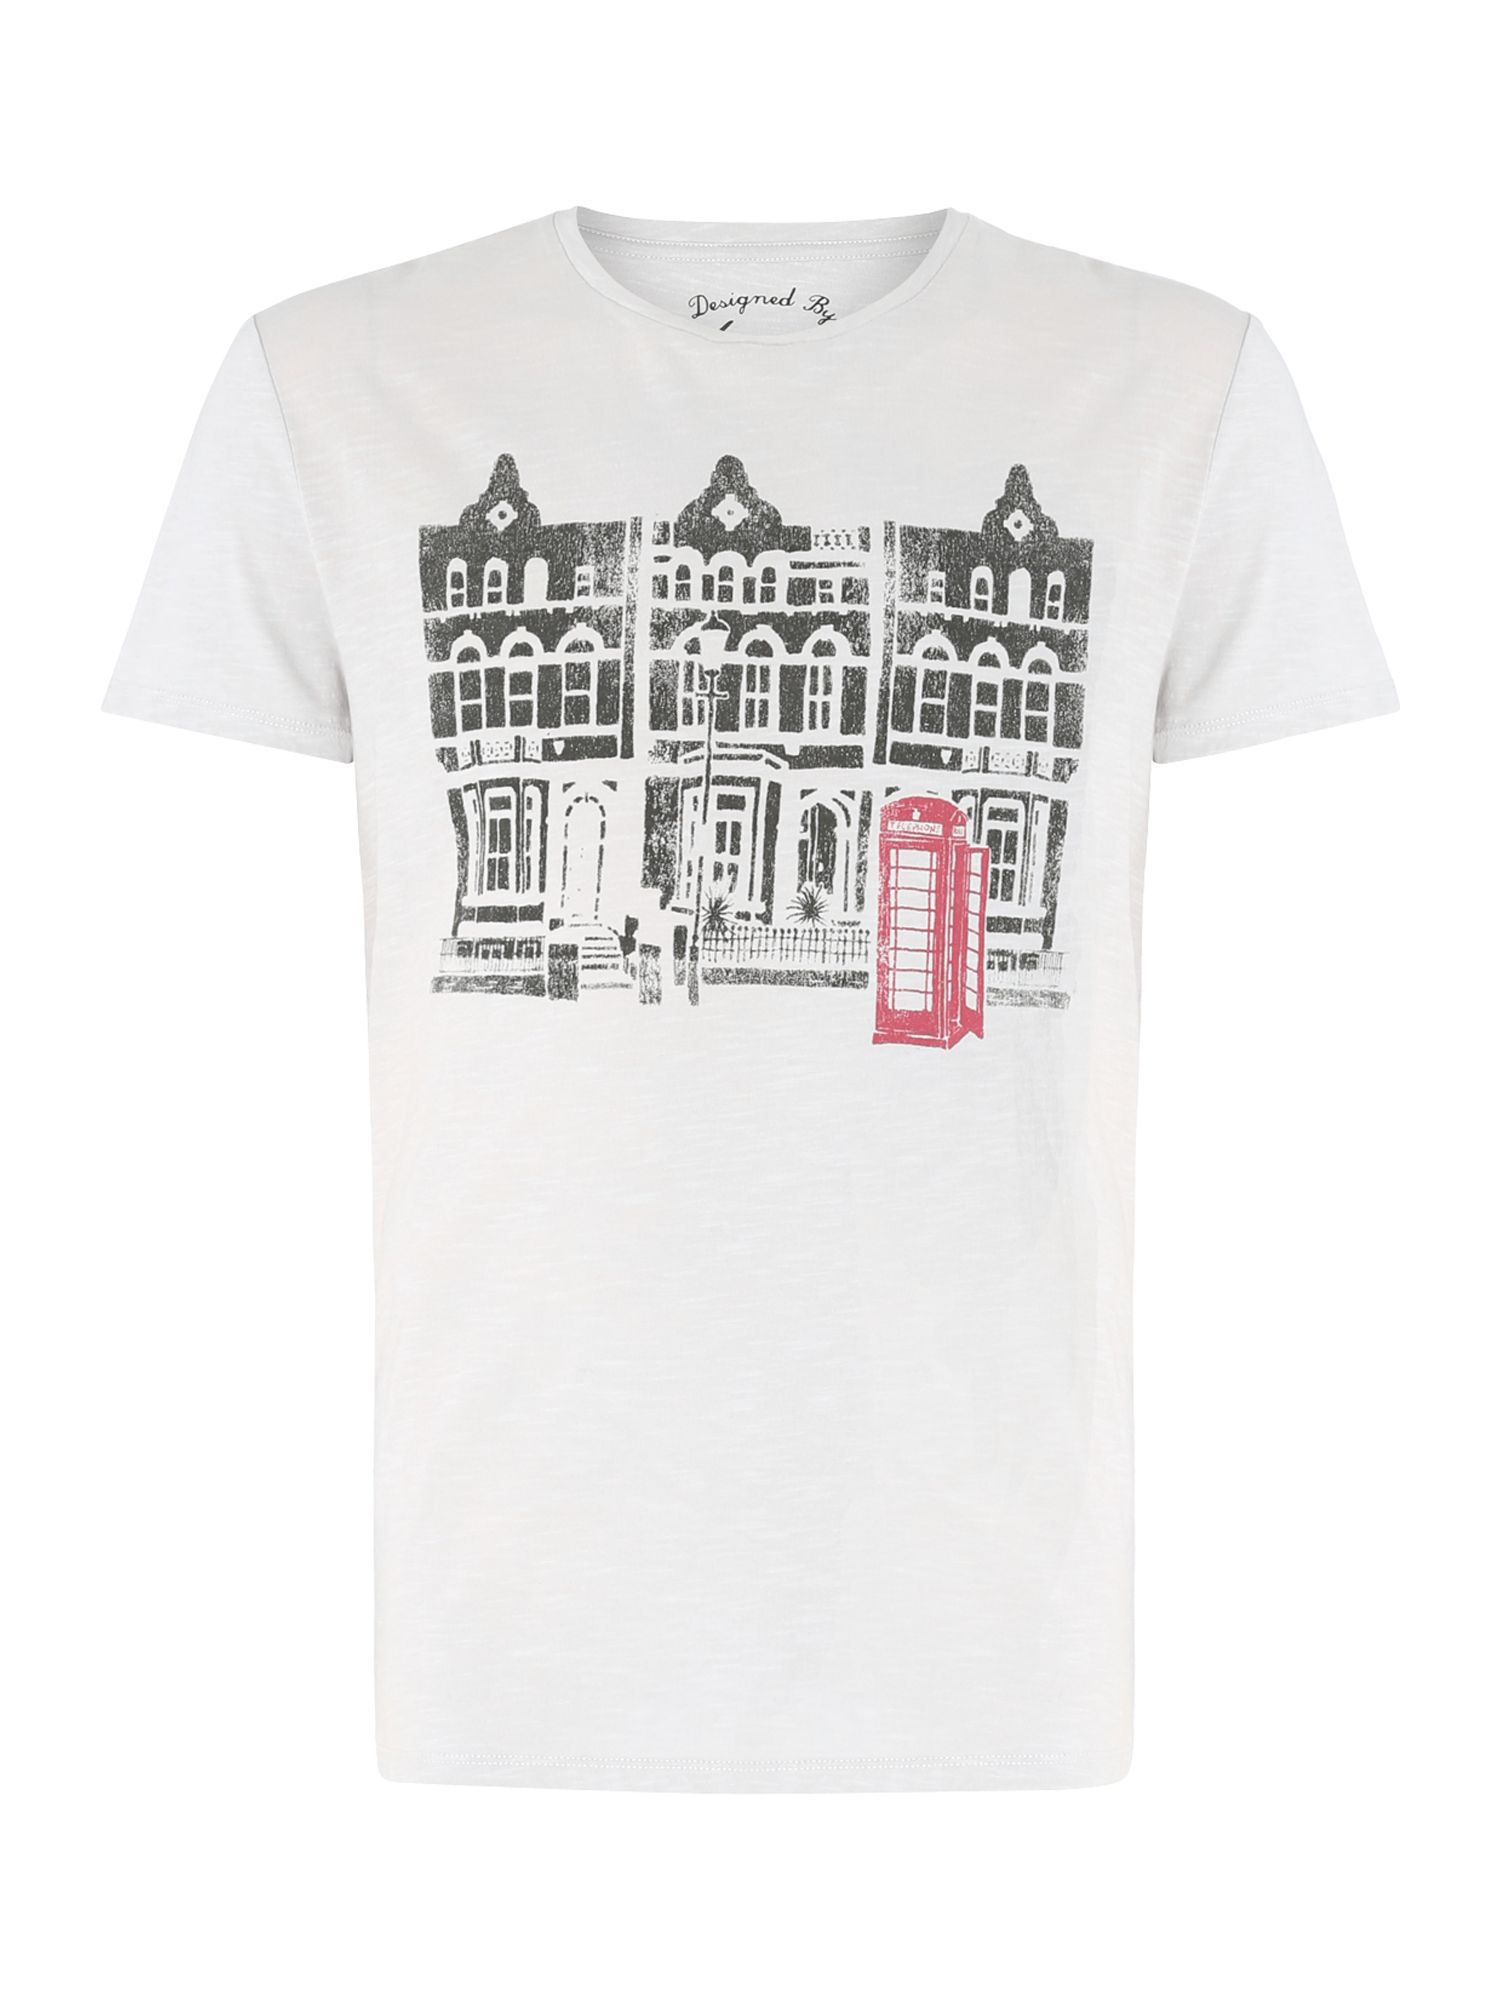 houses graphic tee